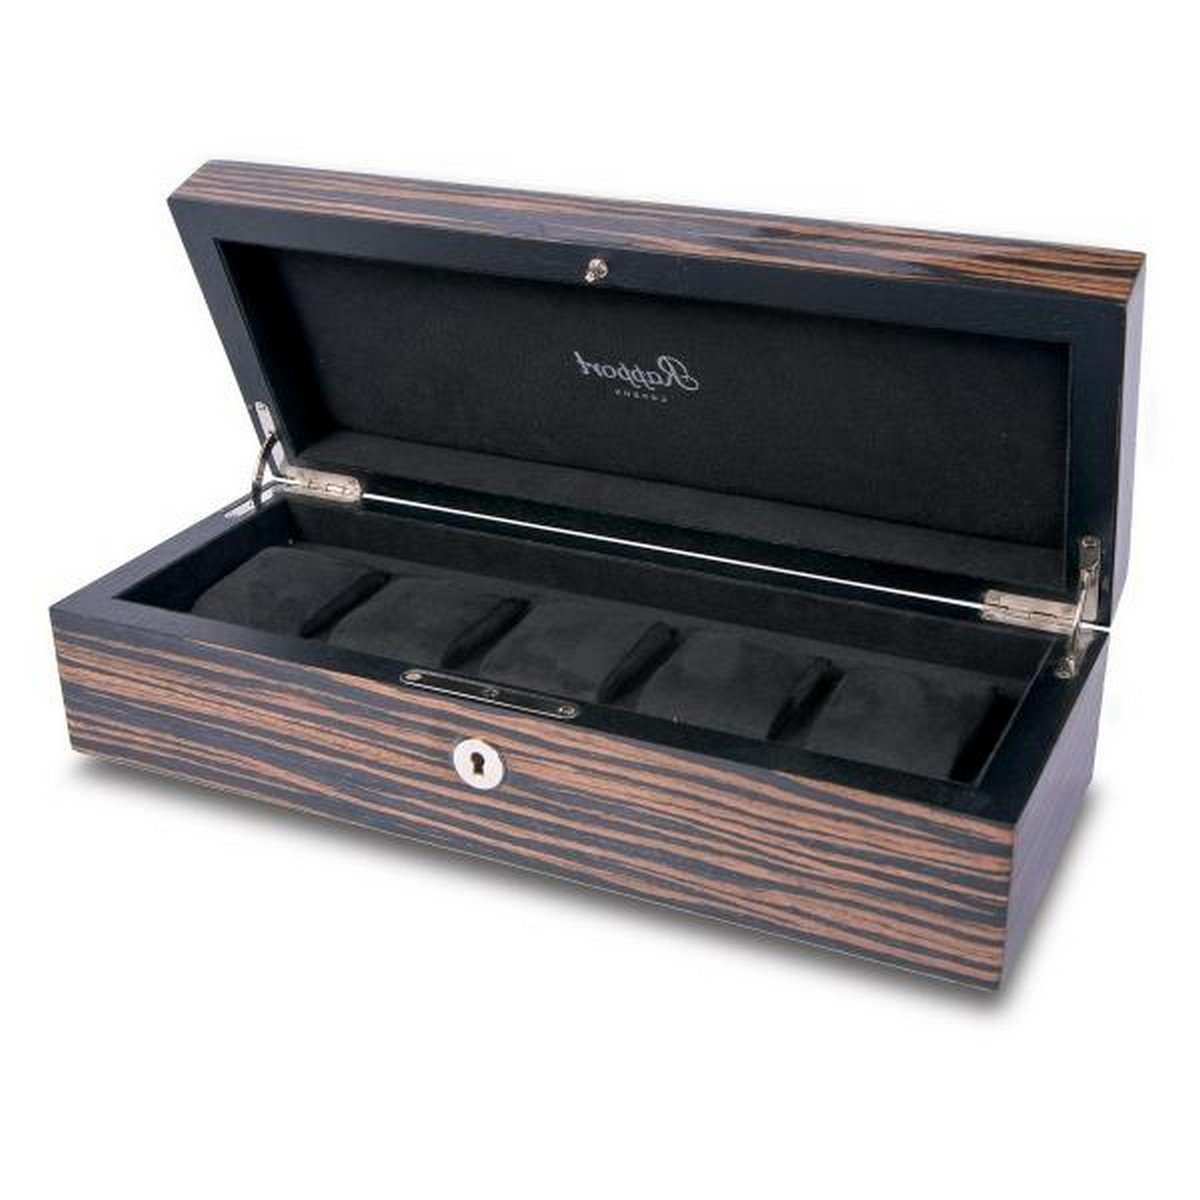 Rapport London Macassar Wood Five Watch Box Storage